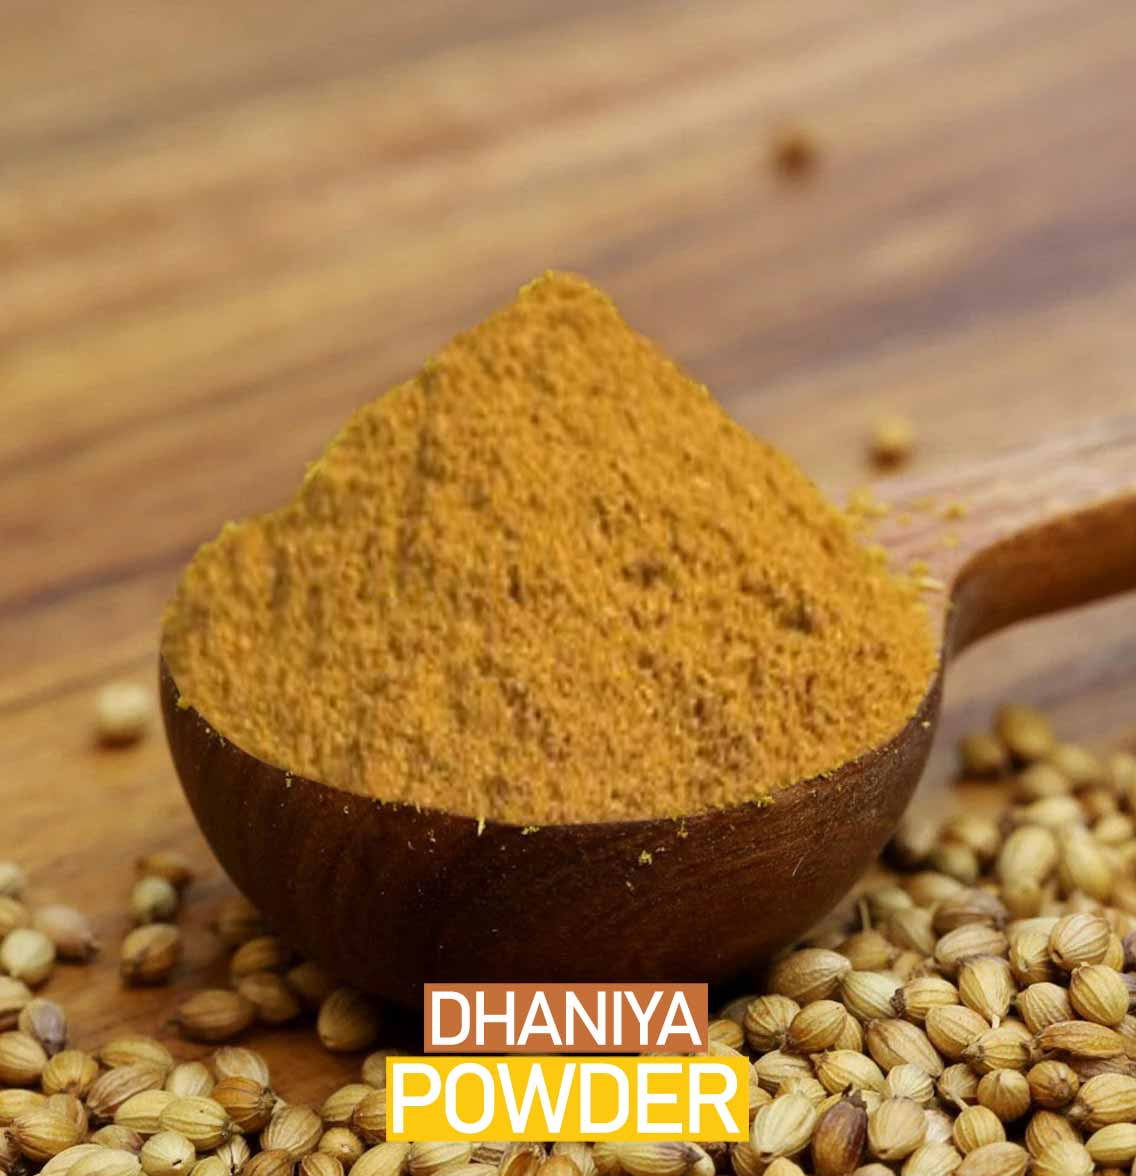 Dhaniya Powder - That takes care of your taste buds and your health